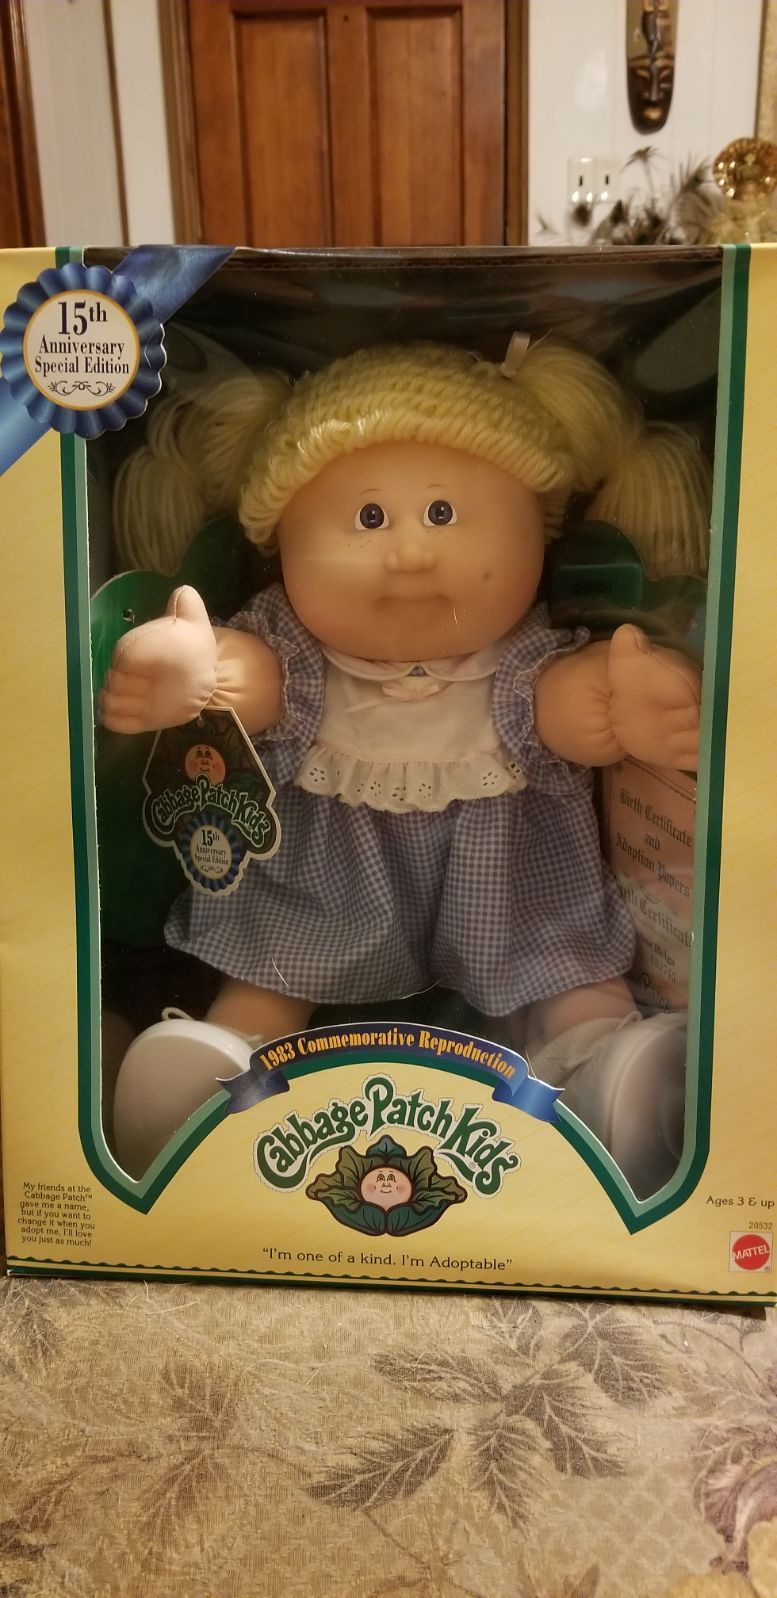 15th Anniversary Special Edition Cabbage Patch Doll Still In Box Cabbage Patch Kids Dolls Cabbage Patch Kids Cabbage Patch Dolls